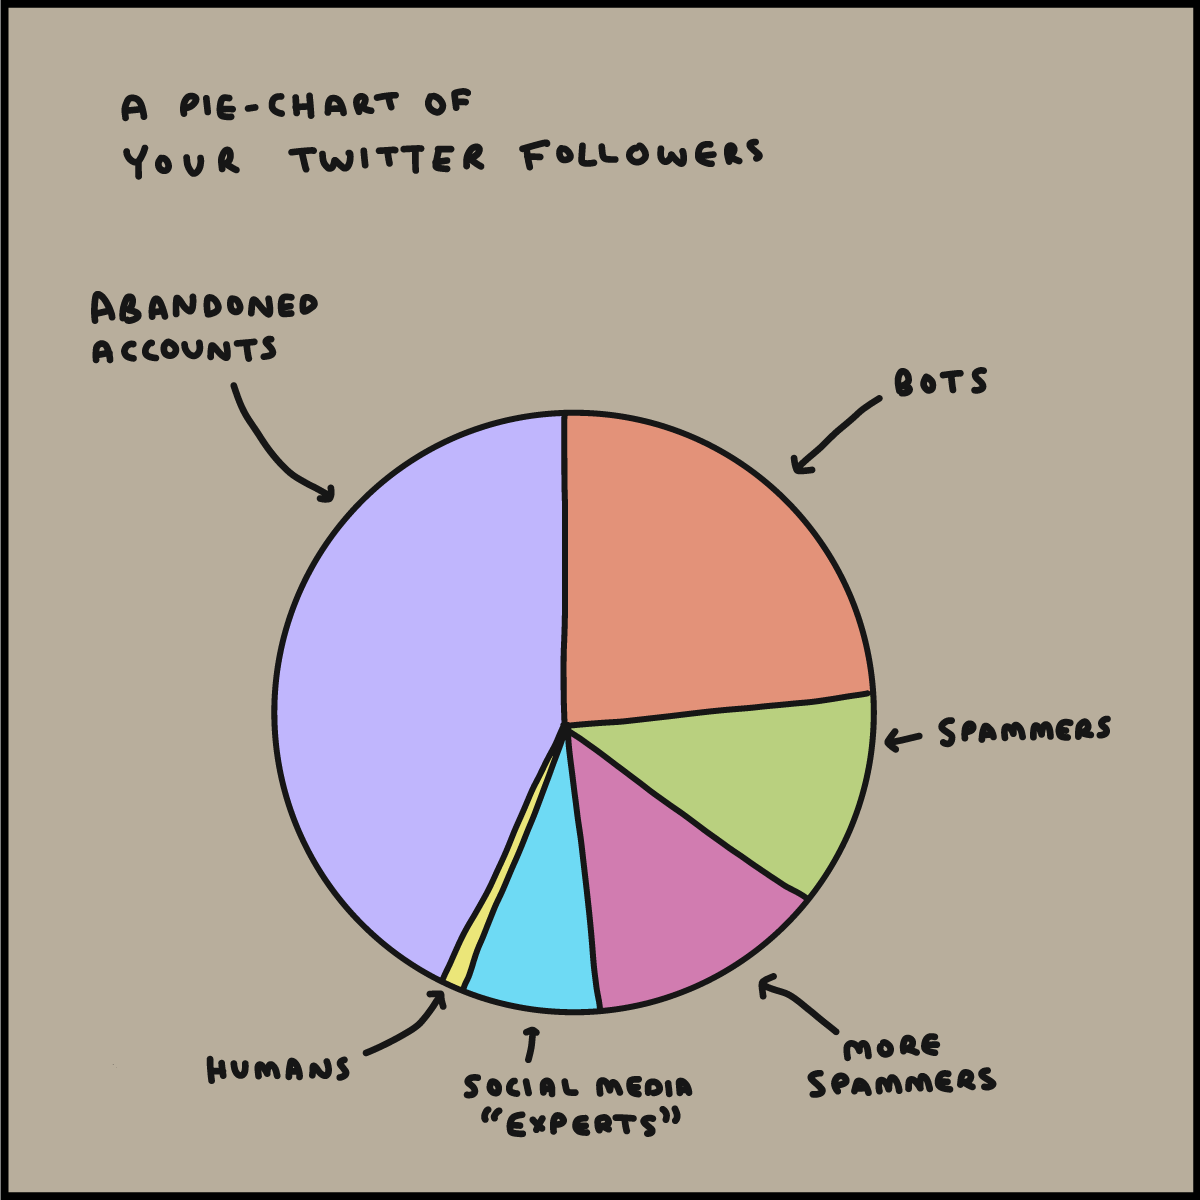 A pie chart of your Twitter followers